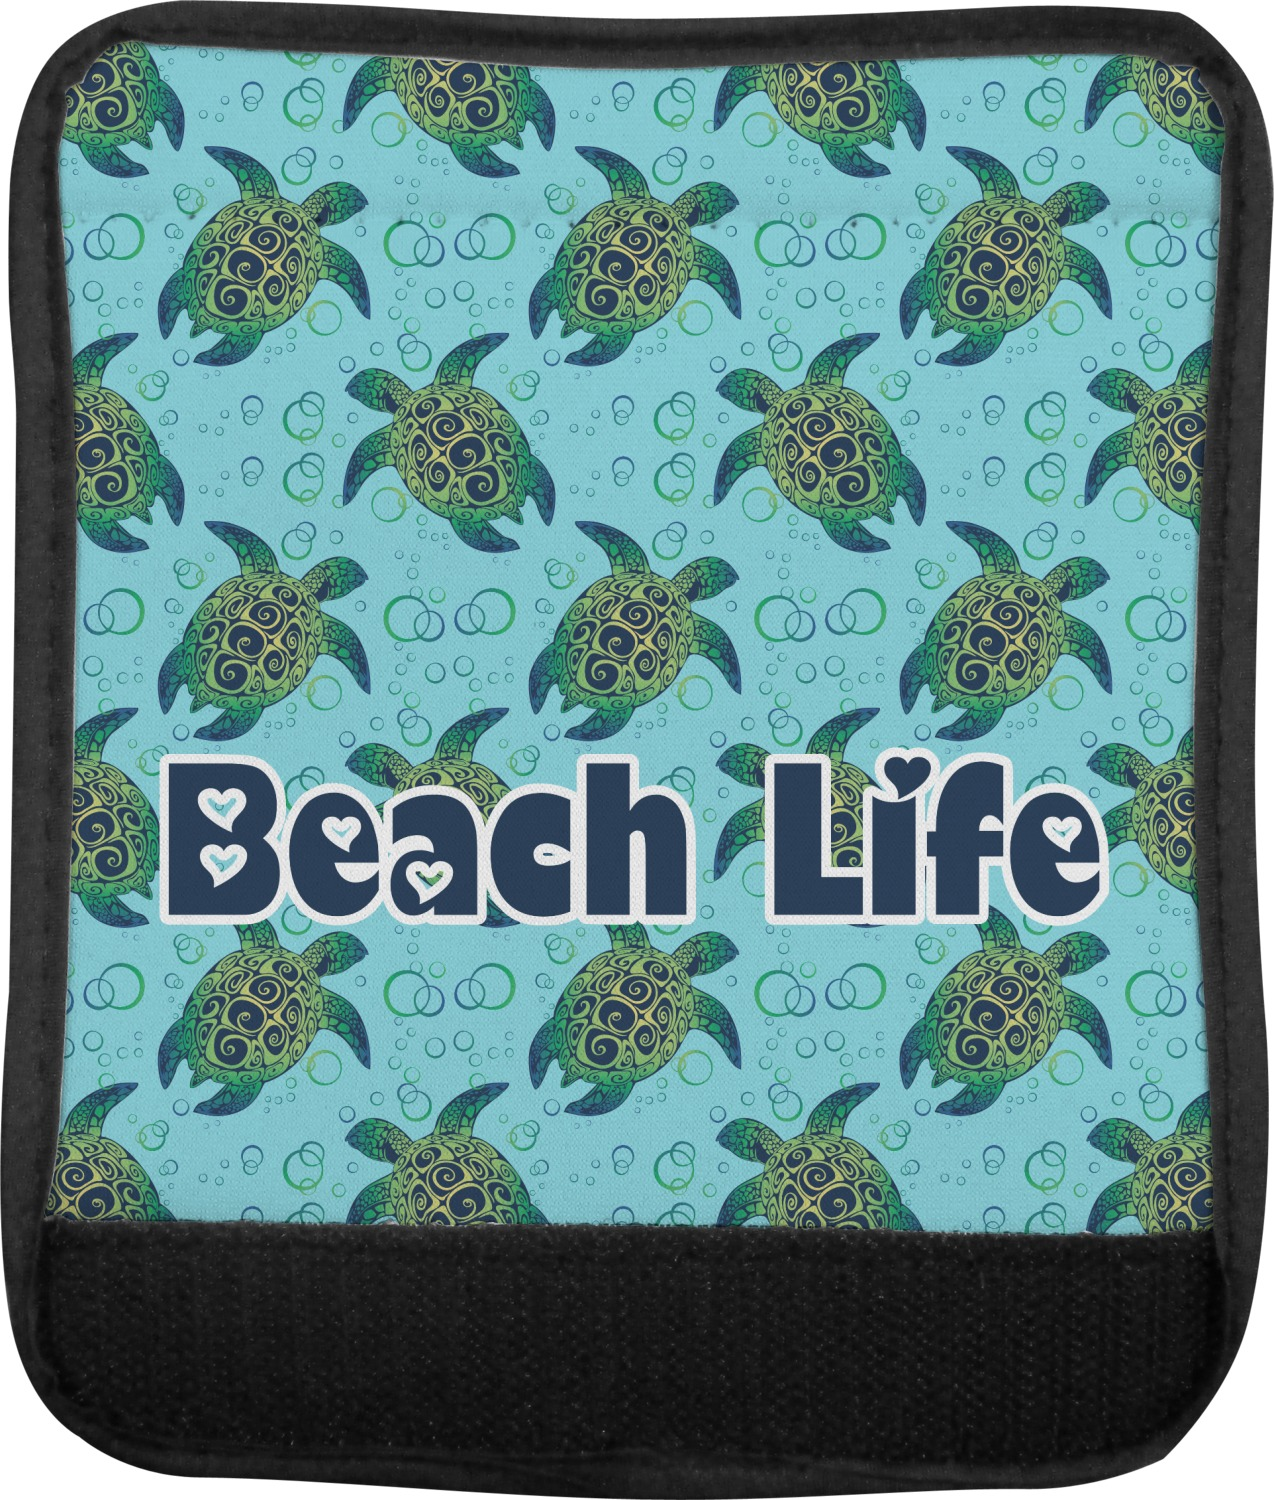 Sea Turtles Luggage Handle Cover Personalized